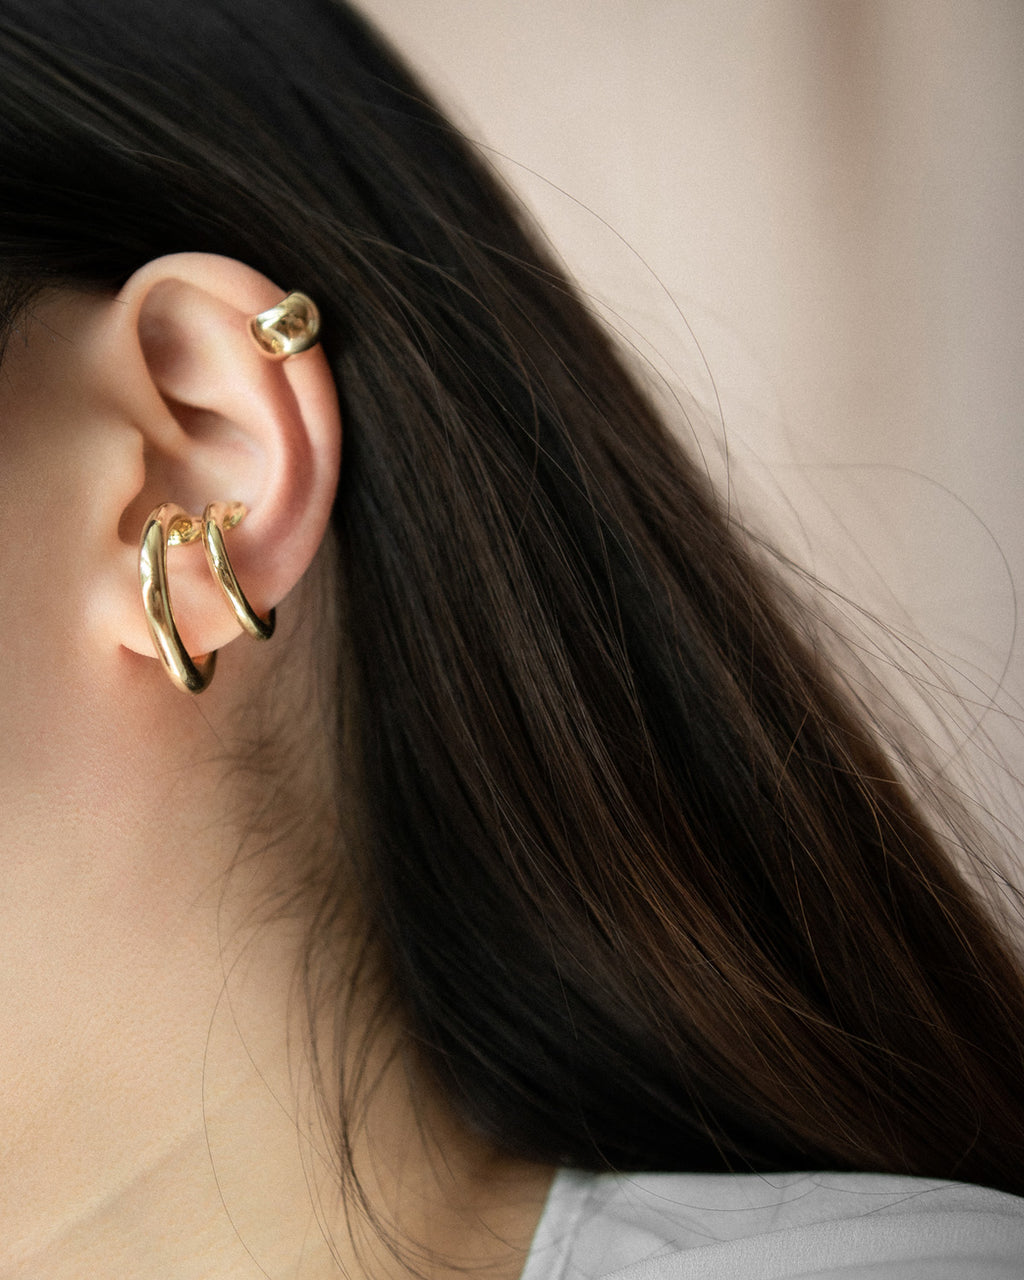 Badass statement ear cuffs for the trendsetters @thehexad